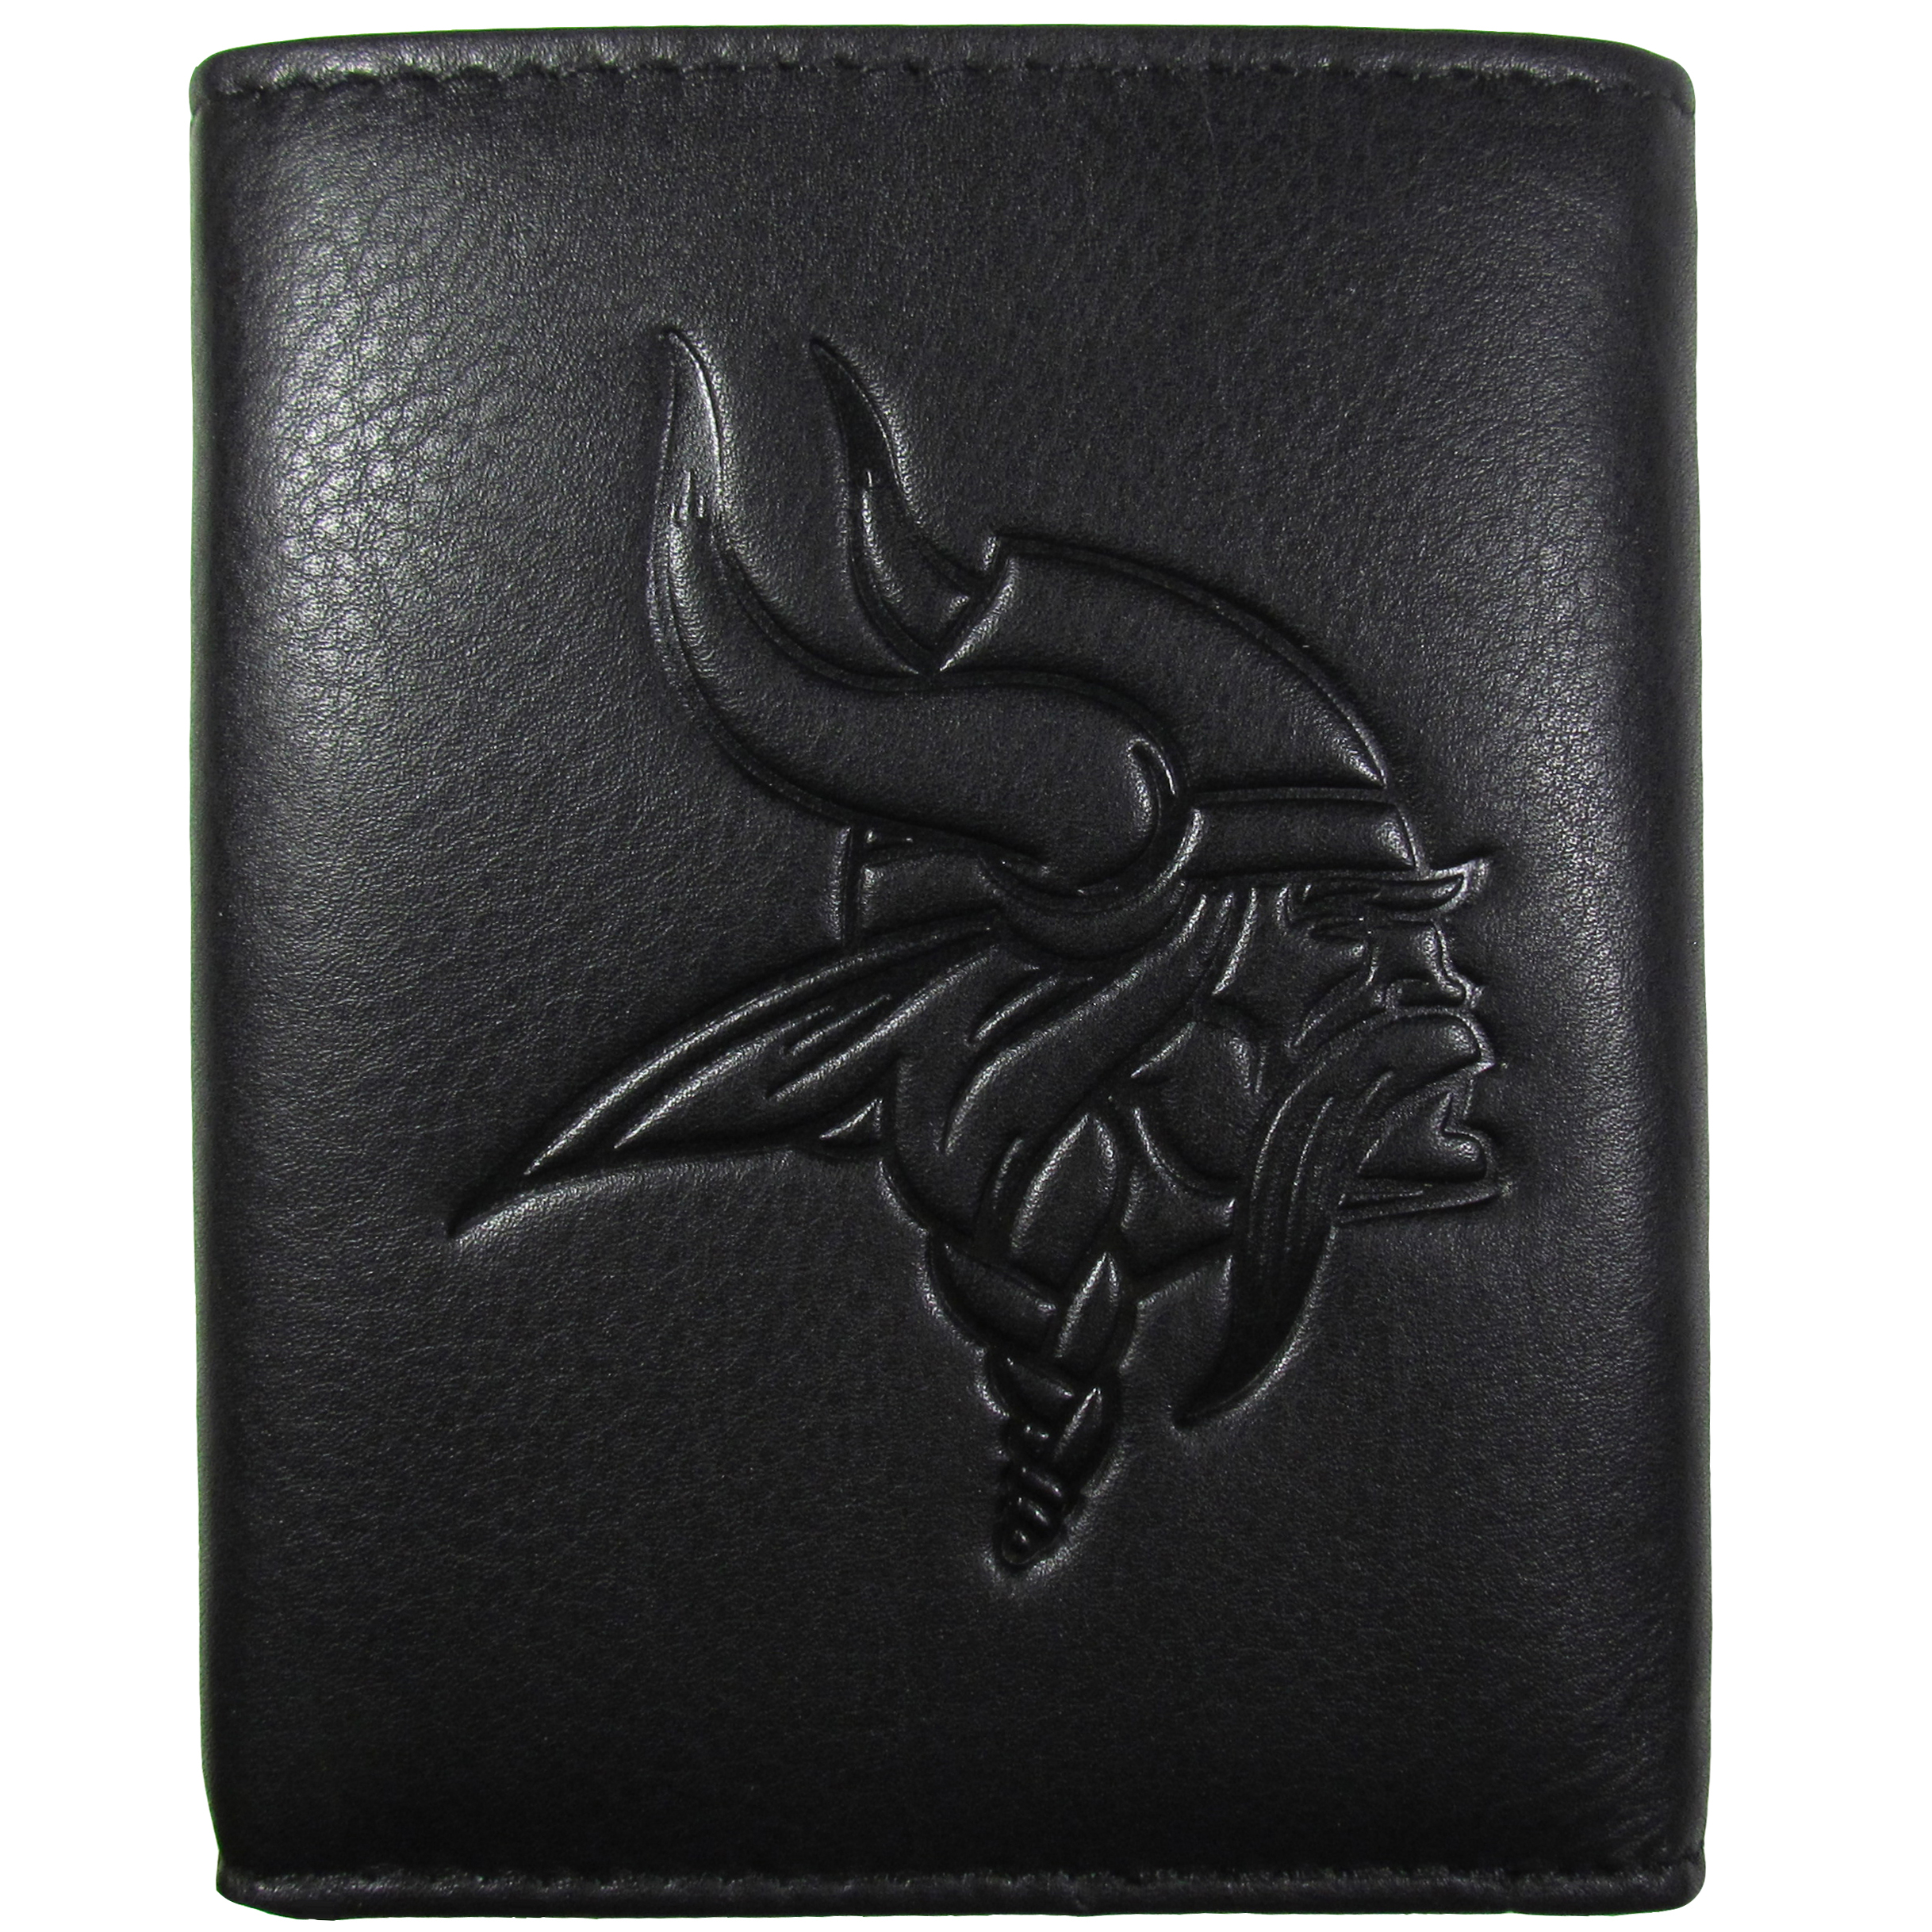 Minnesota Vikings Embossed Leather Tri-fold Wallet - This stylish leather wallet is made of high quality leather with a supple feel and classic look. The front of the tri-fold style wallet has a deeply embossed Minnesota Vikings logo. The billfold is packed with features that will allow to keep organized, lots of credit card slots, windowed ID slot, large pockets for bills and a removable sleeve with extra slots for even more storage. This is a must-have men's fashion accessory that would make any fan very proud to own.